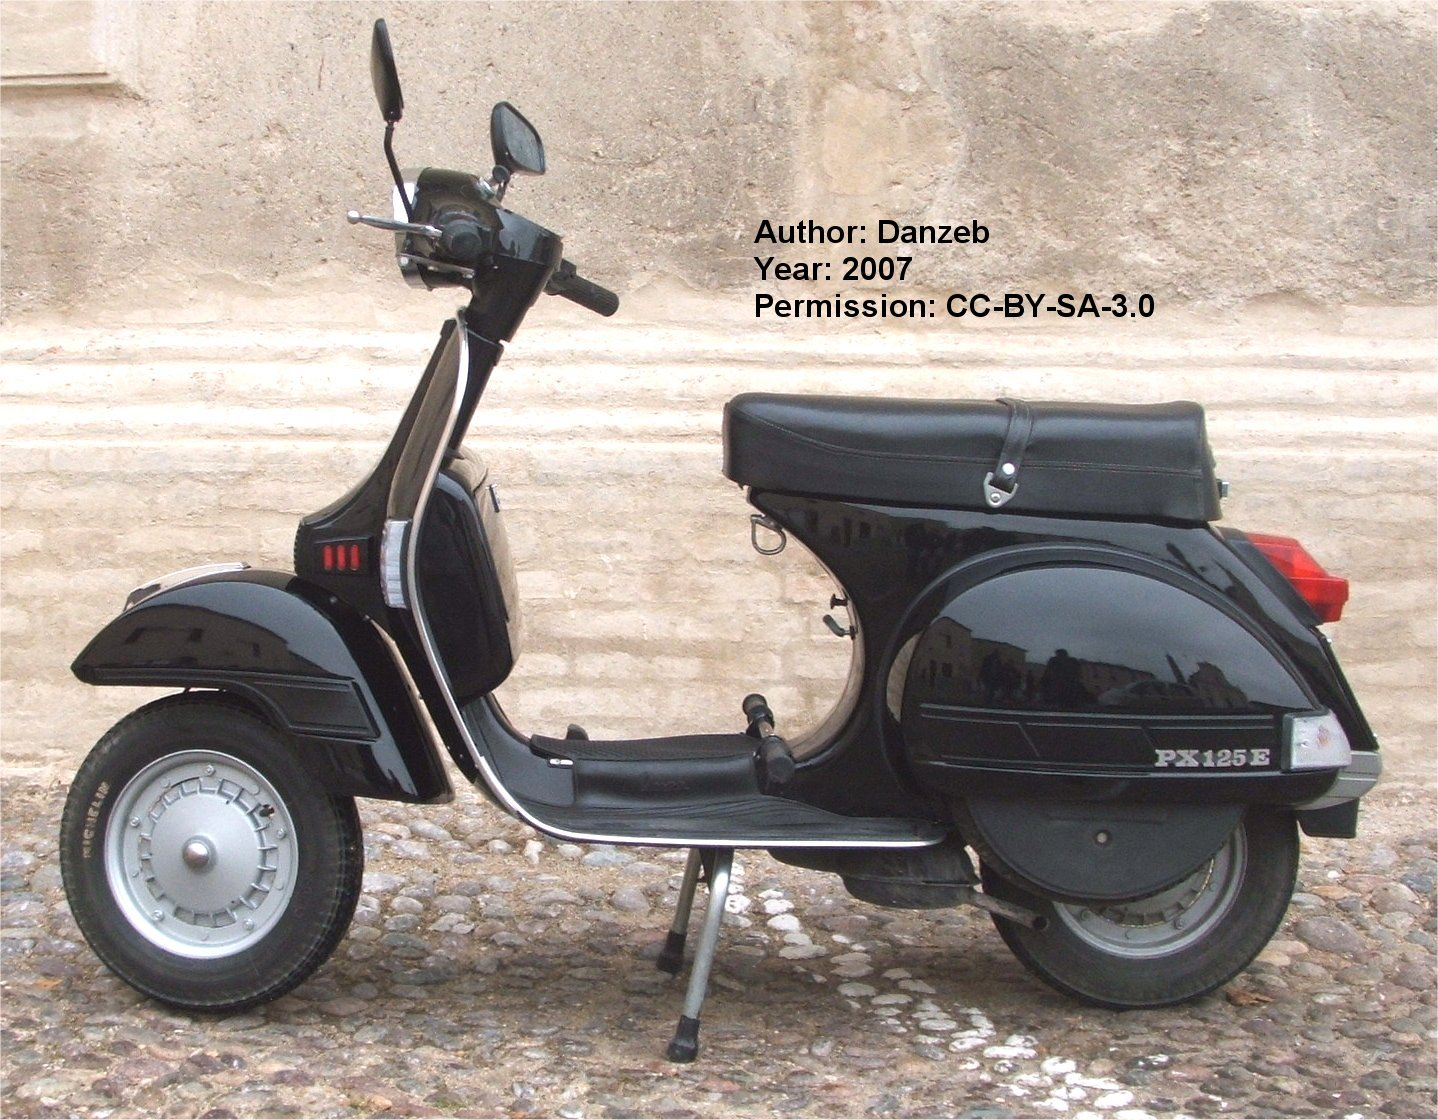 piaggio vespa px 125 photos and comments. Black Bedroom Furniture Sets. Home Design Ideas